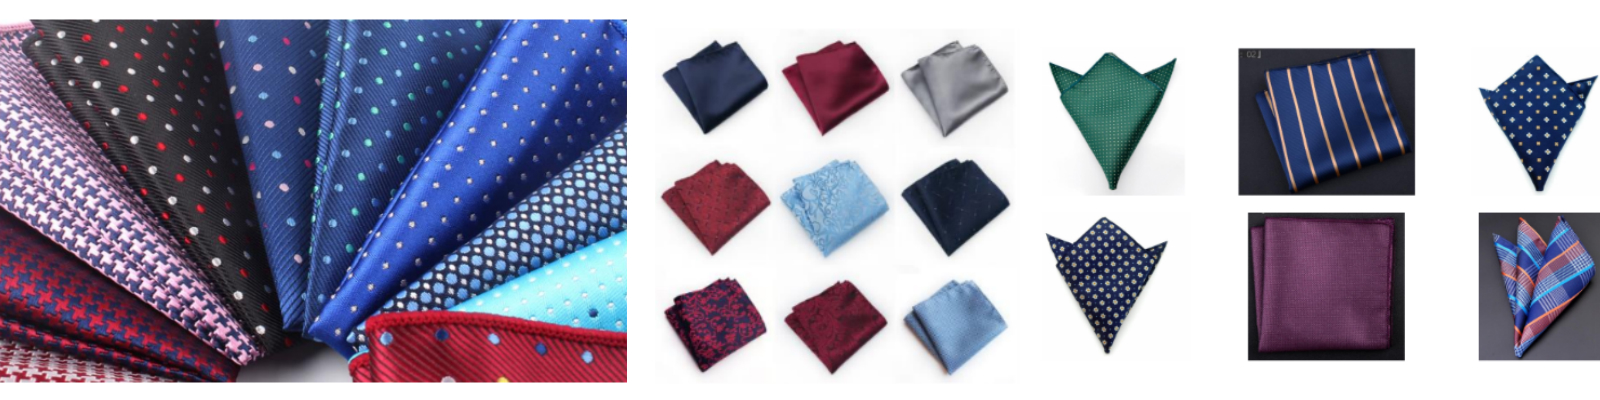 LGFG men's silk packet squares for wholesale distribution